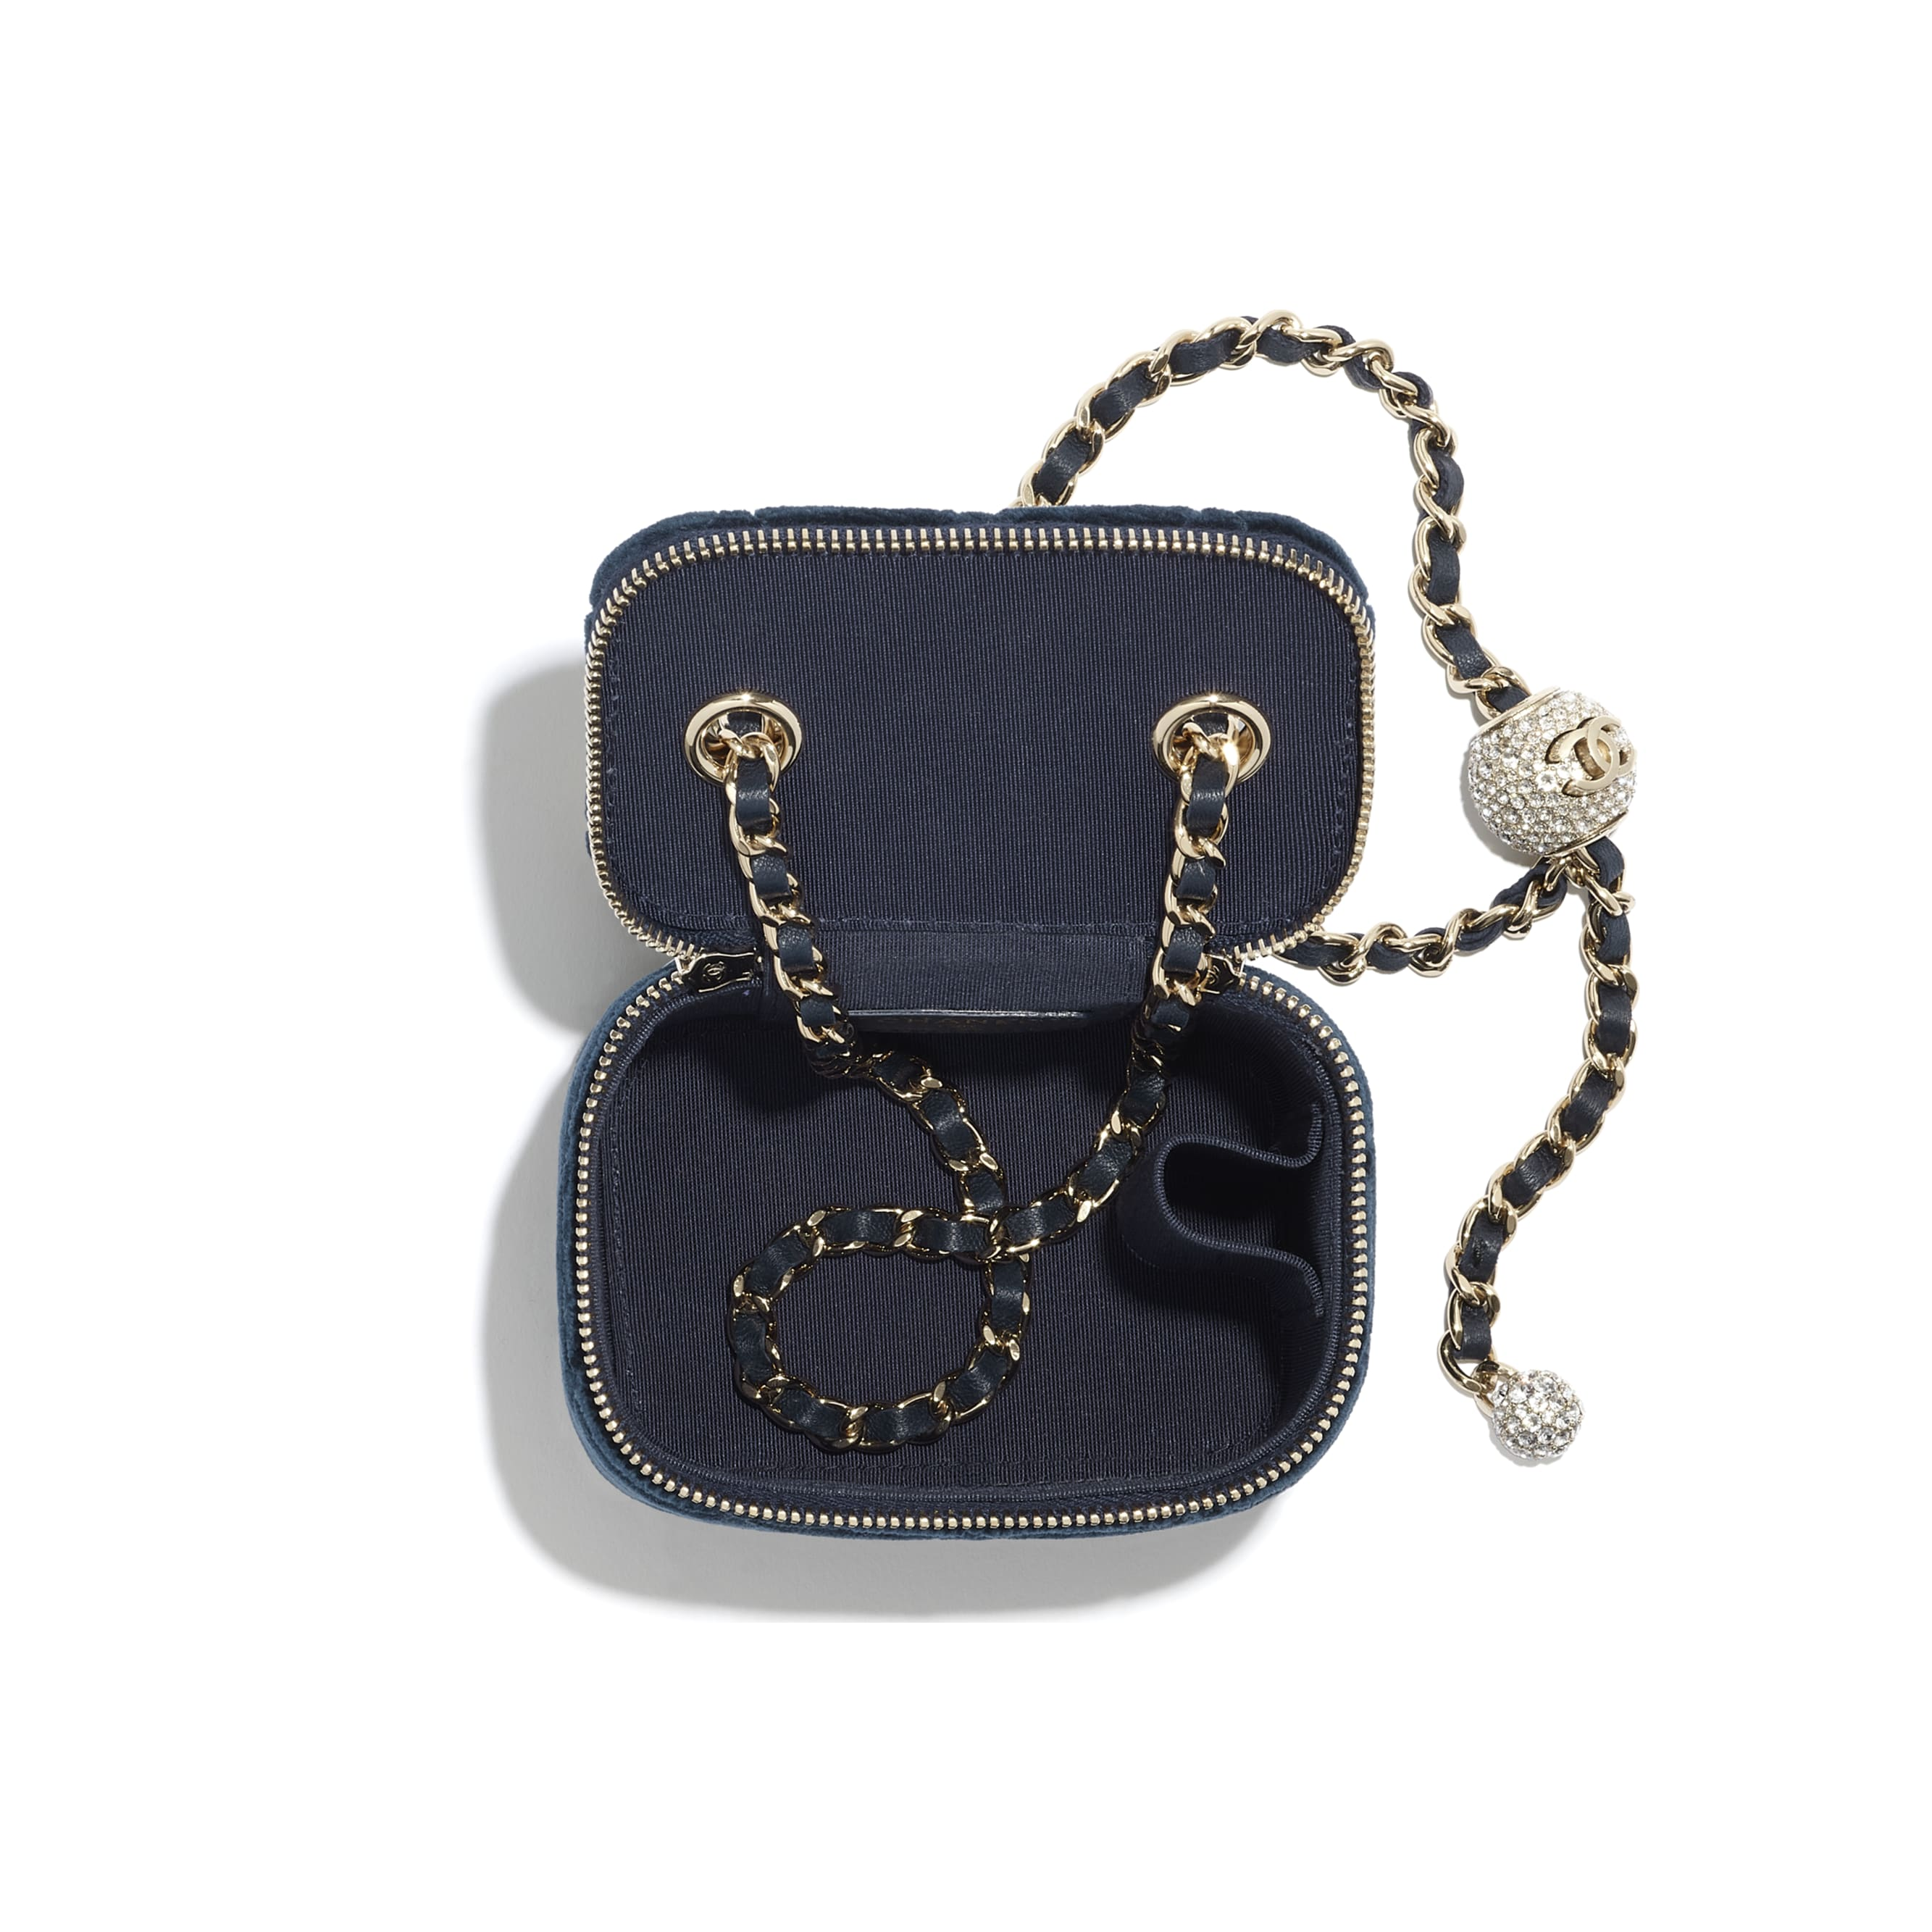 Small Classic Box with Chain - Navy Blue - Velvet, Diamanté & Gold-Tone Metal - CHANEL - Other view - see standard sized version